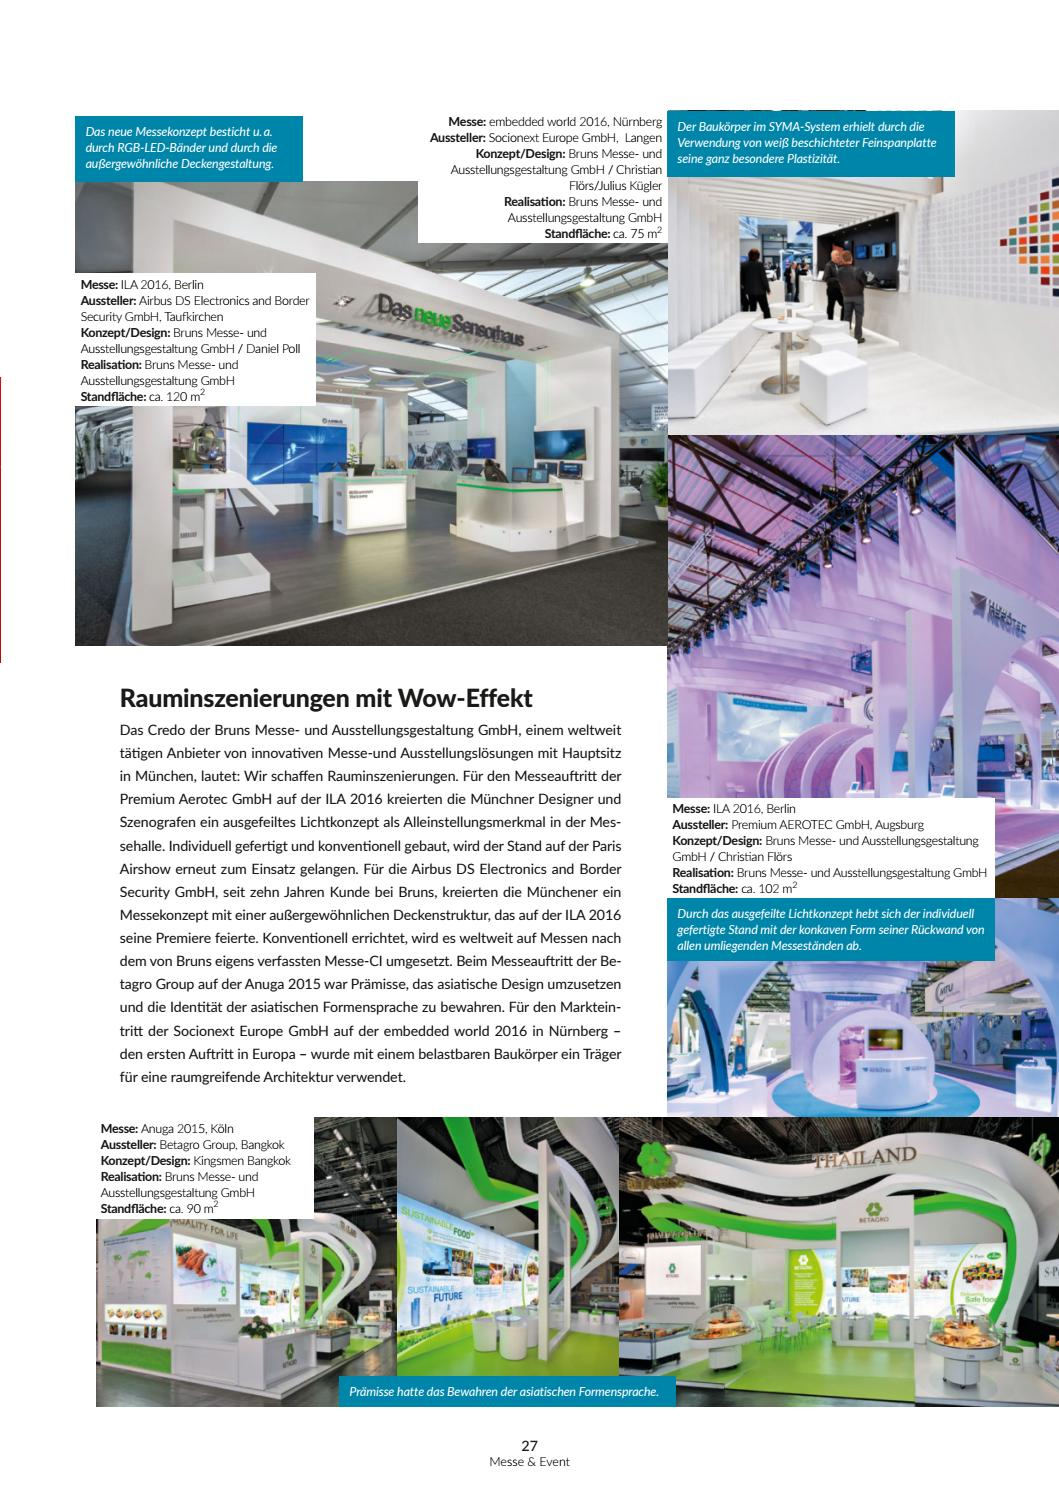 Bruns Messebau messe & event 5/2016messe & event magazin - issuu